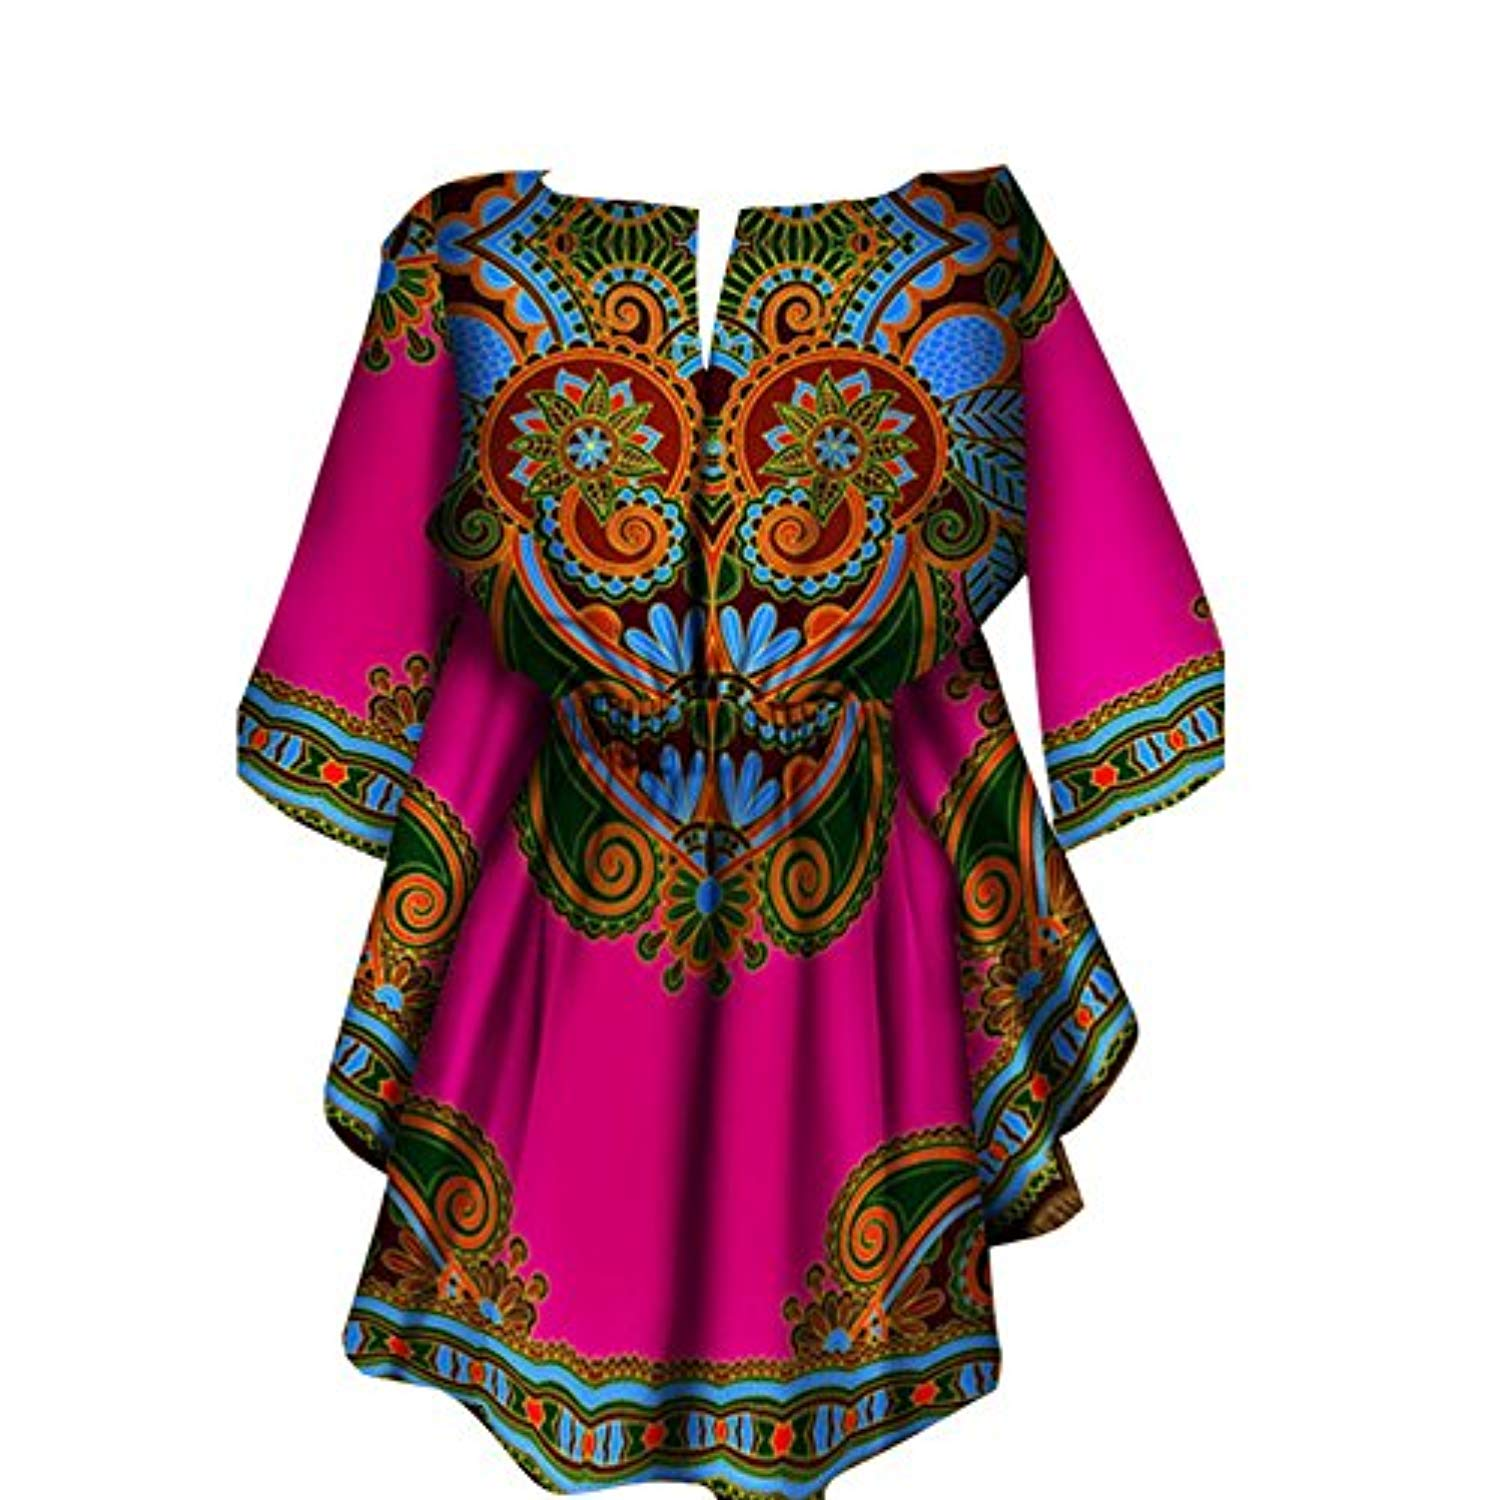 Inorin Womens African Dresses Dashiki High Low Prom High Waisted 3/4 Sleeve Printed Summer Spring Party Dresses - Ufumbuzi - Home